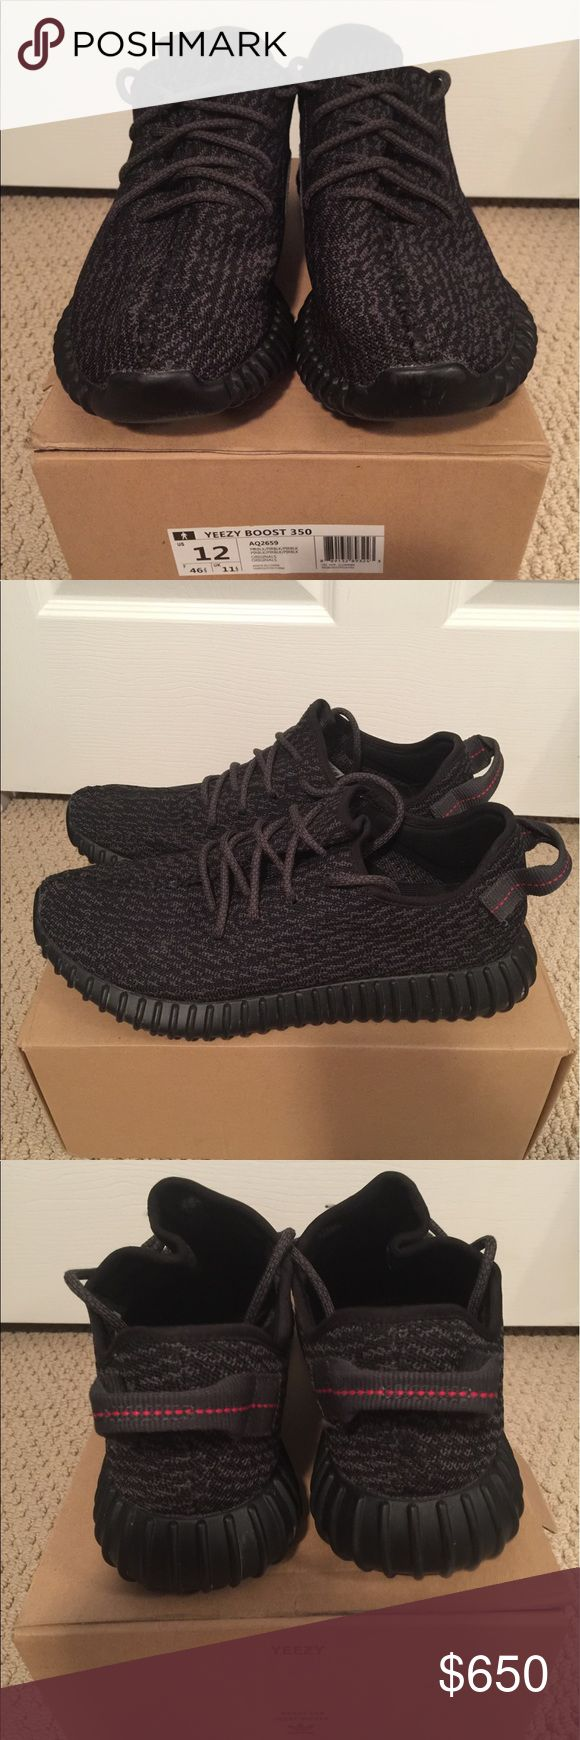 AUTHENTIC Black Kanye West Yeezys, Size 12 AUTHENTIC limited edition black Kanye West Adidas 350 Boost Yeezys, size 12 in excellent condition. Have only been worn a handful of times so they are in excellent condition. Comes with the original receipt from